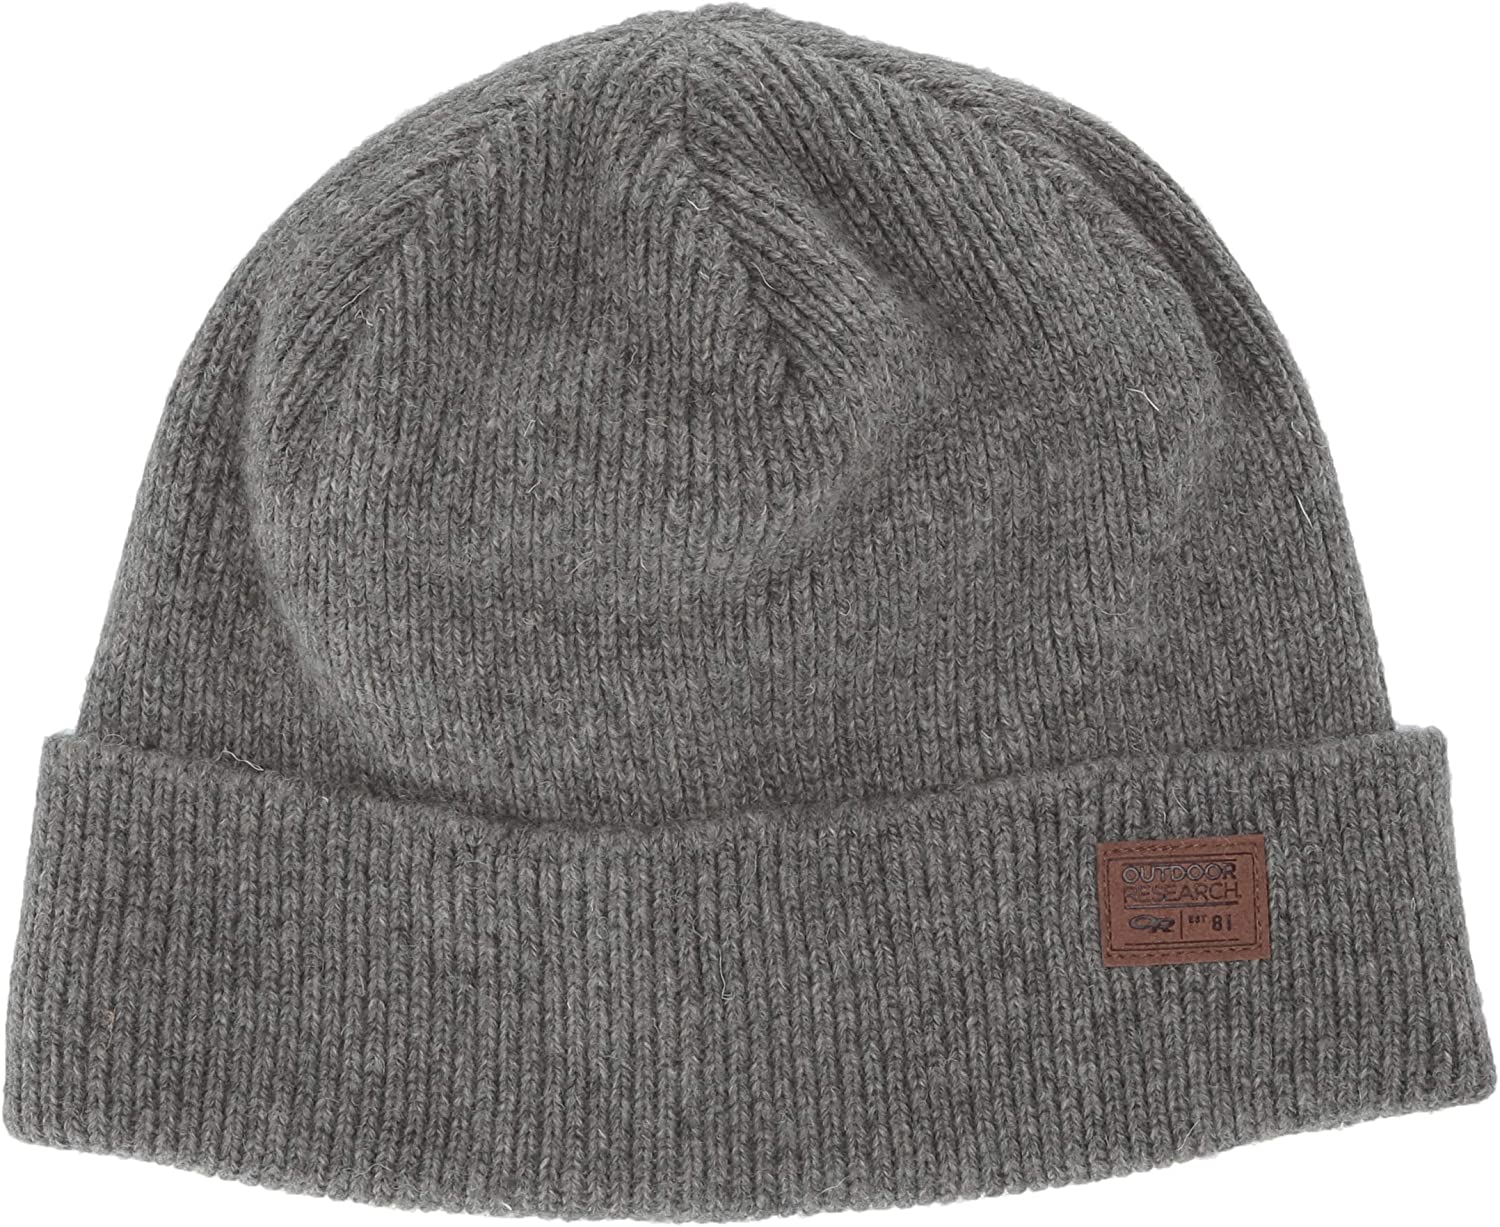 Outdoor Research Unisex Kona Insulated Beanie